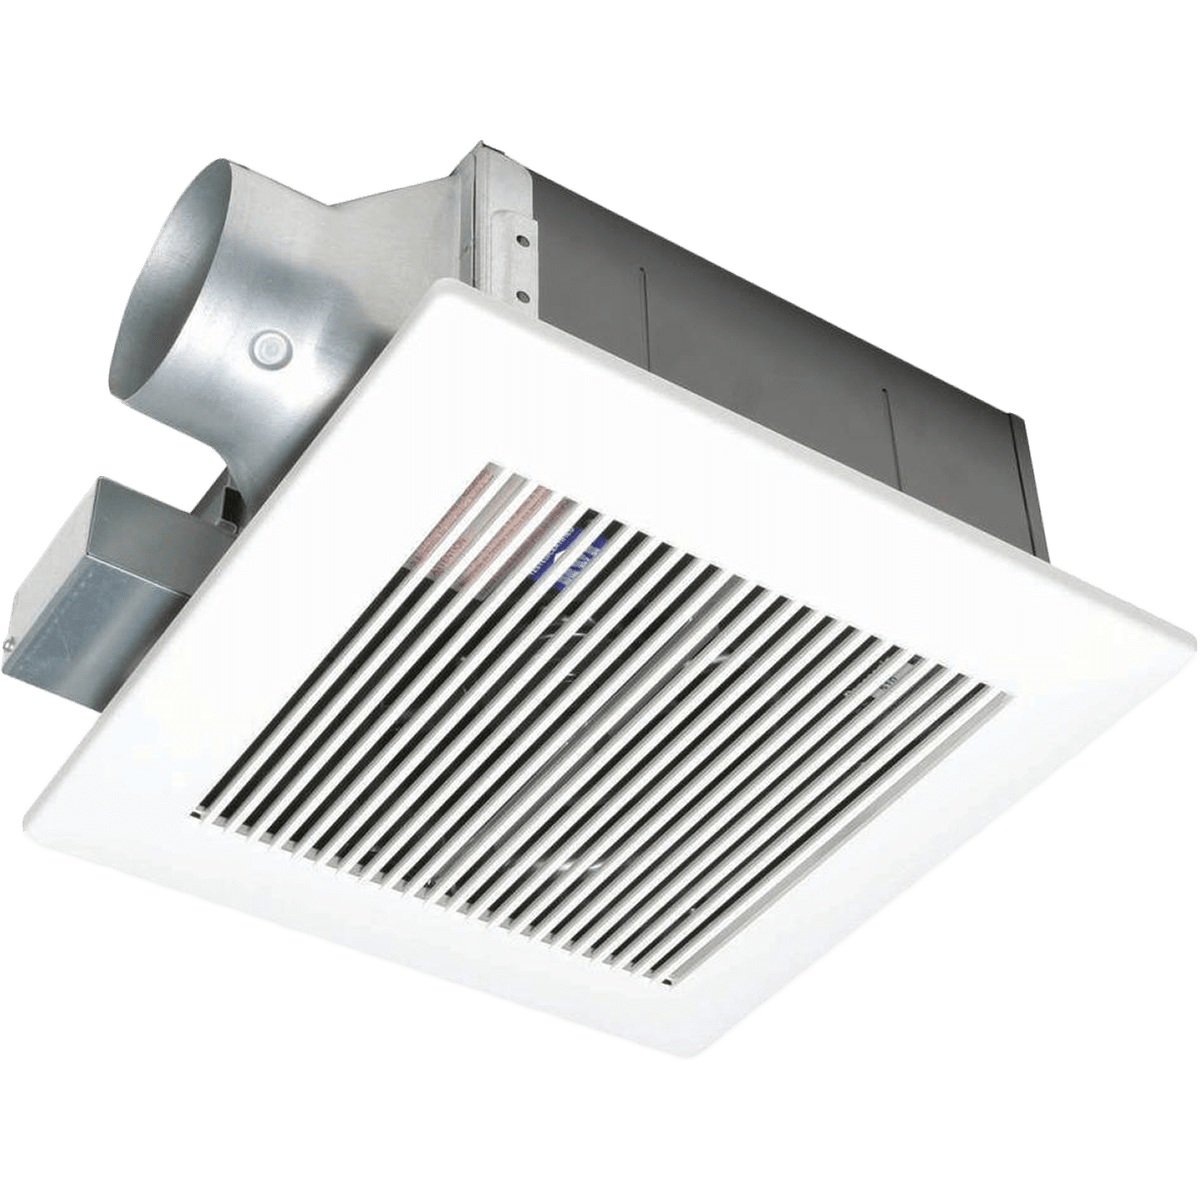 Panasonic WhisperFit EZ Bathroom Fans Sylvane - Panasonic bathroom fan 80 cfm